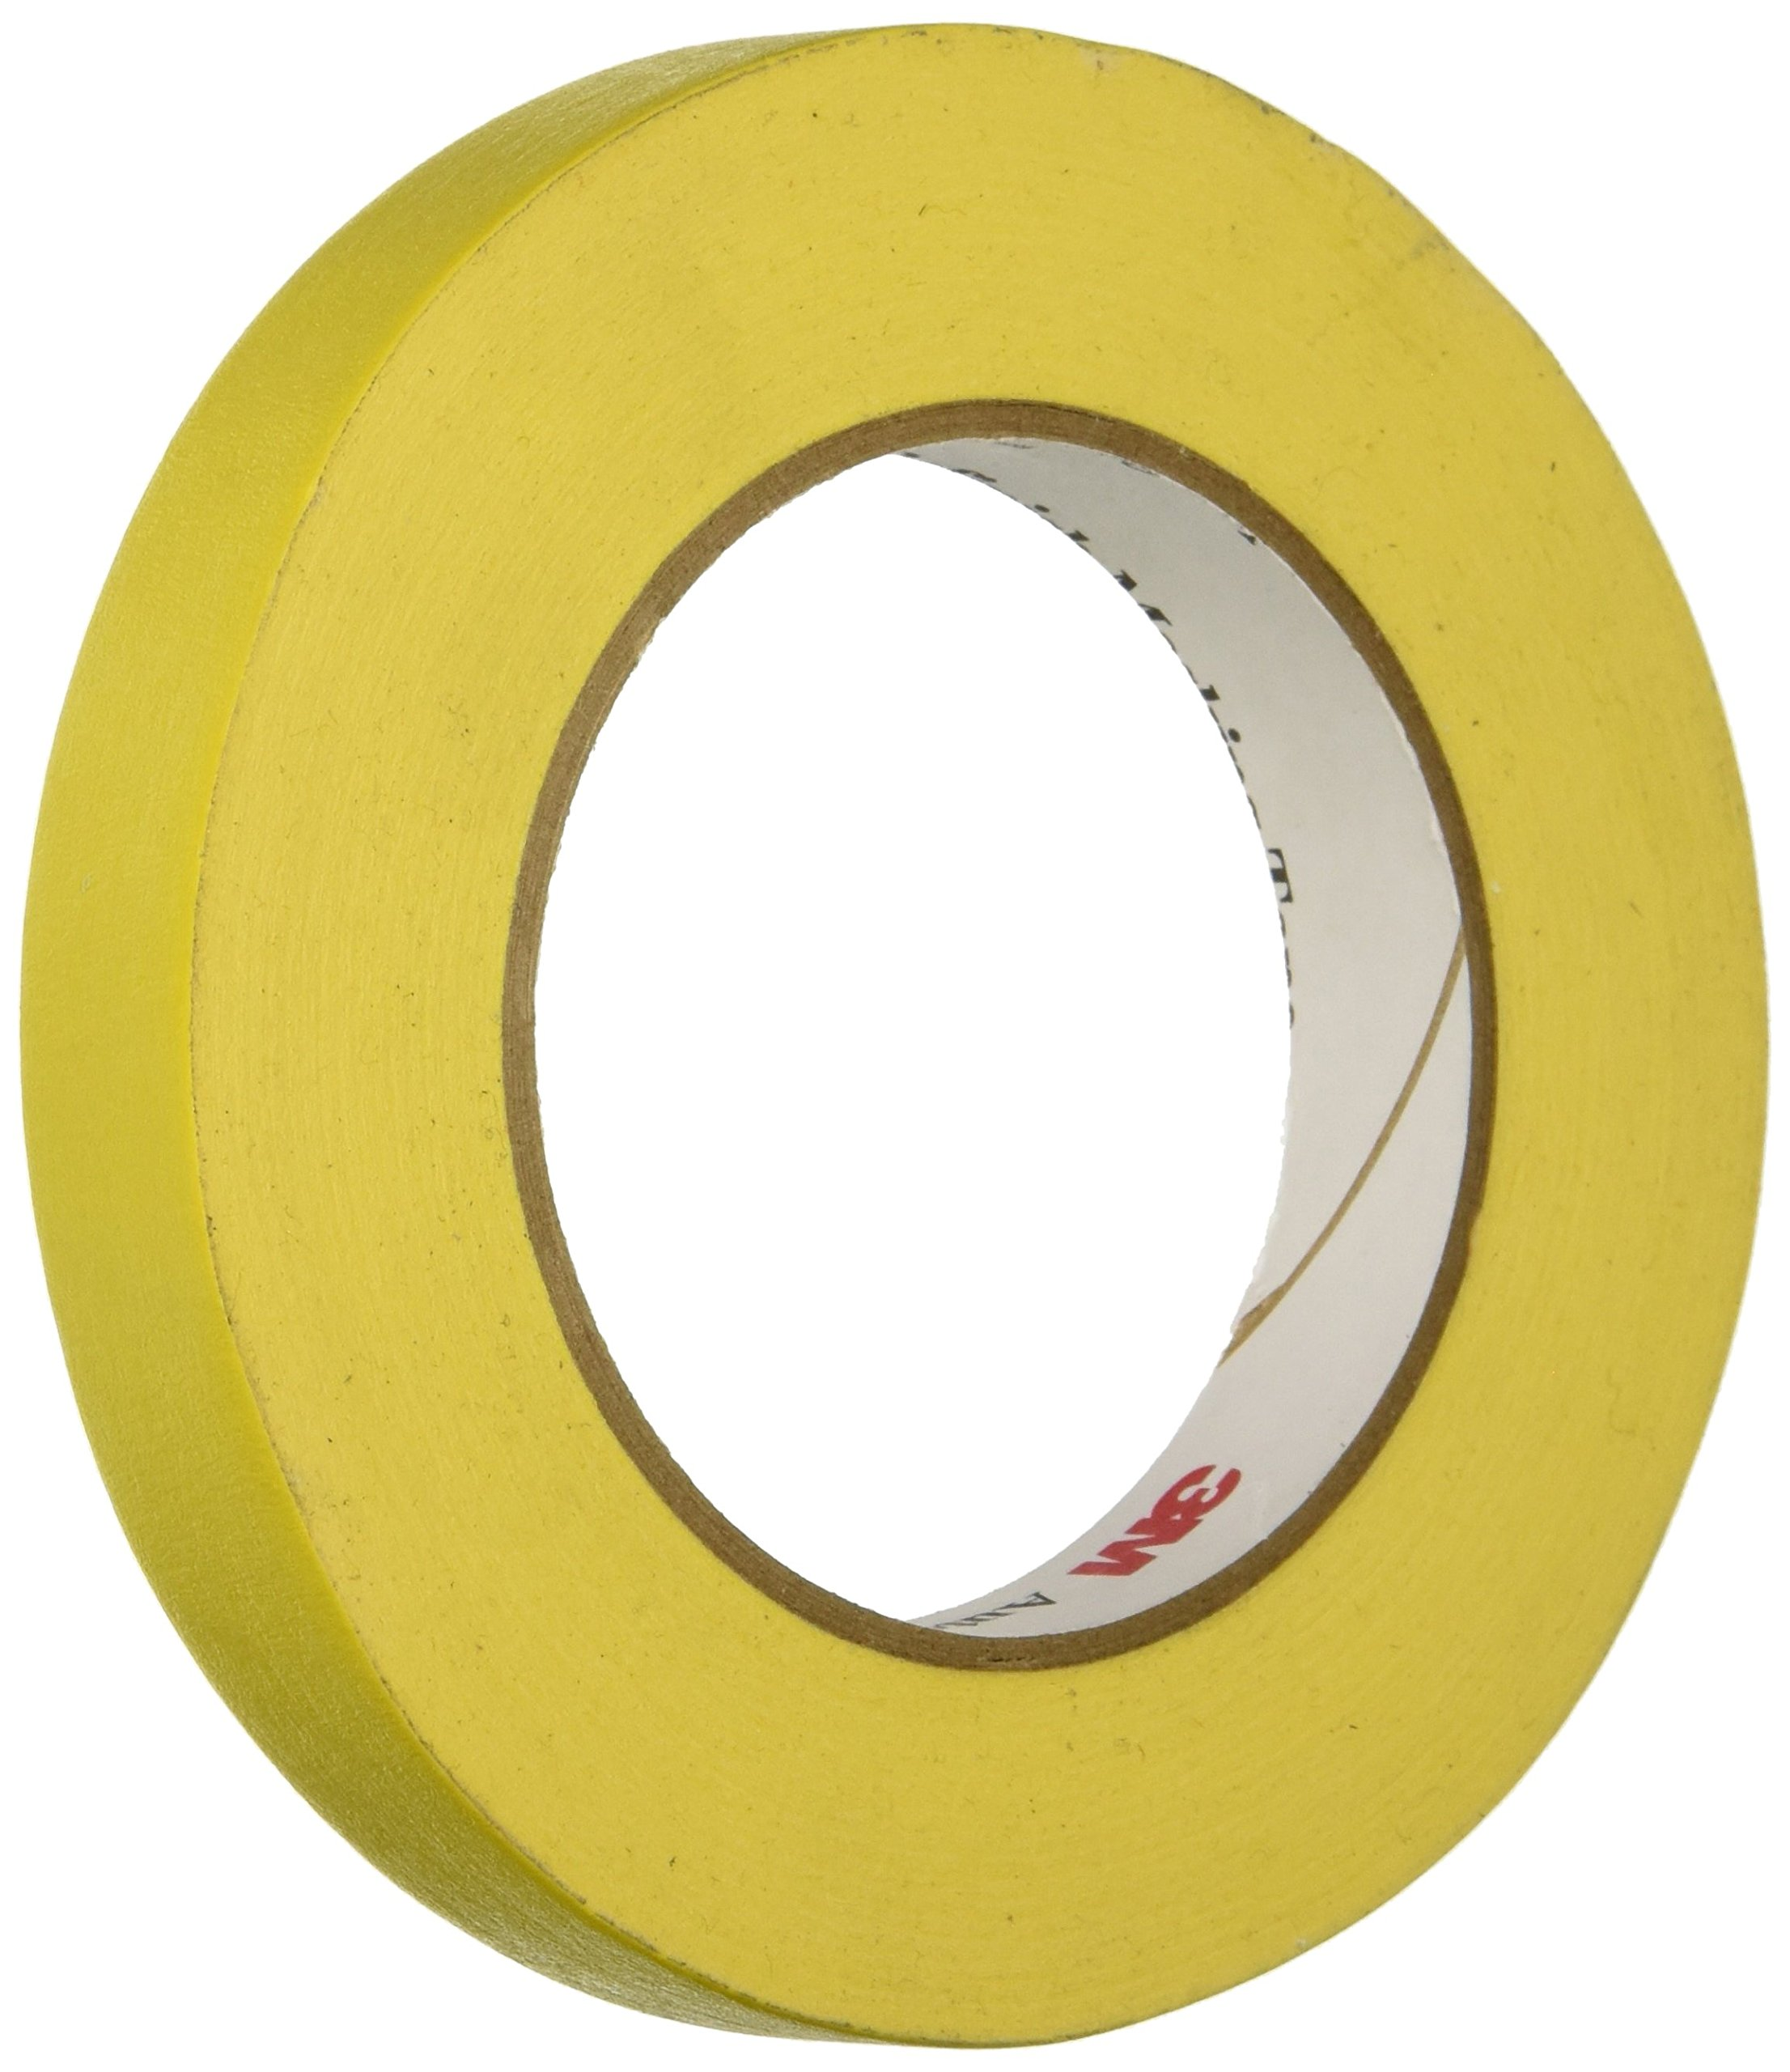 3M 06652 Automotive Refinish Masking Tape, 250 Degree F Performance Temperature, 28 lbsin Tensile Strength, 55m Length x 18mm Width, Yellow (Case of 12 Rolls) by 3M